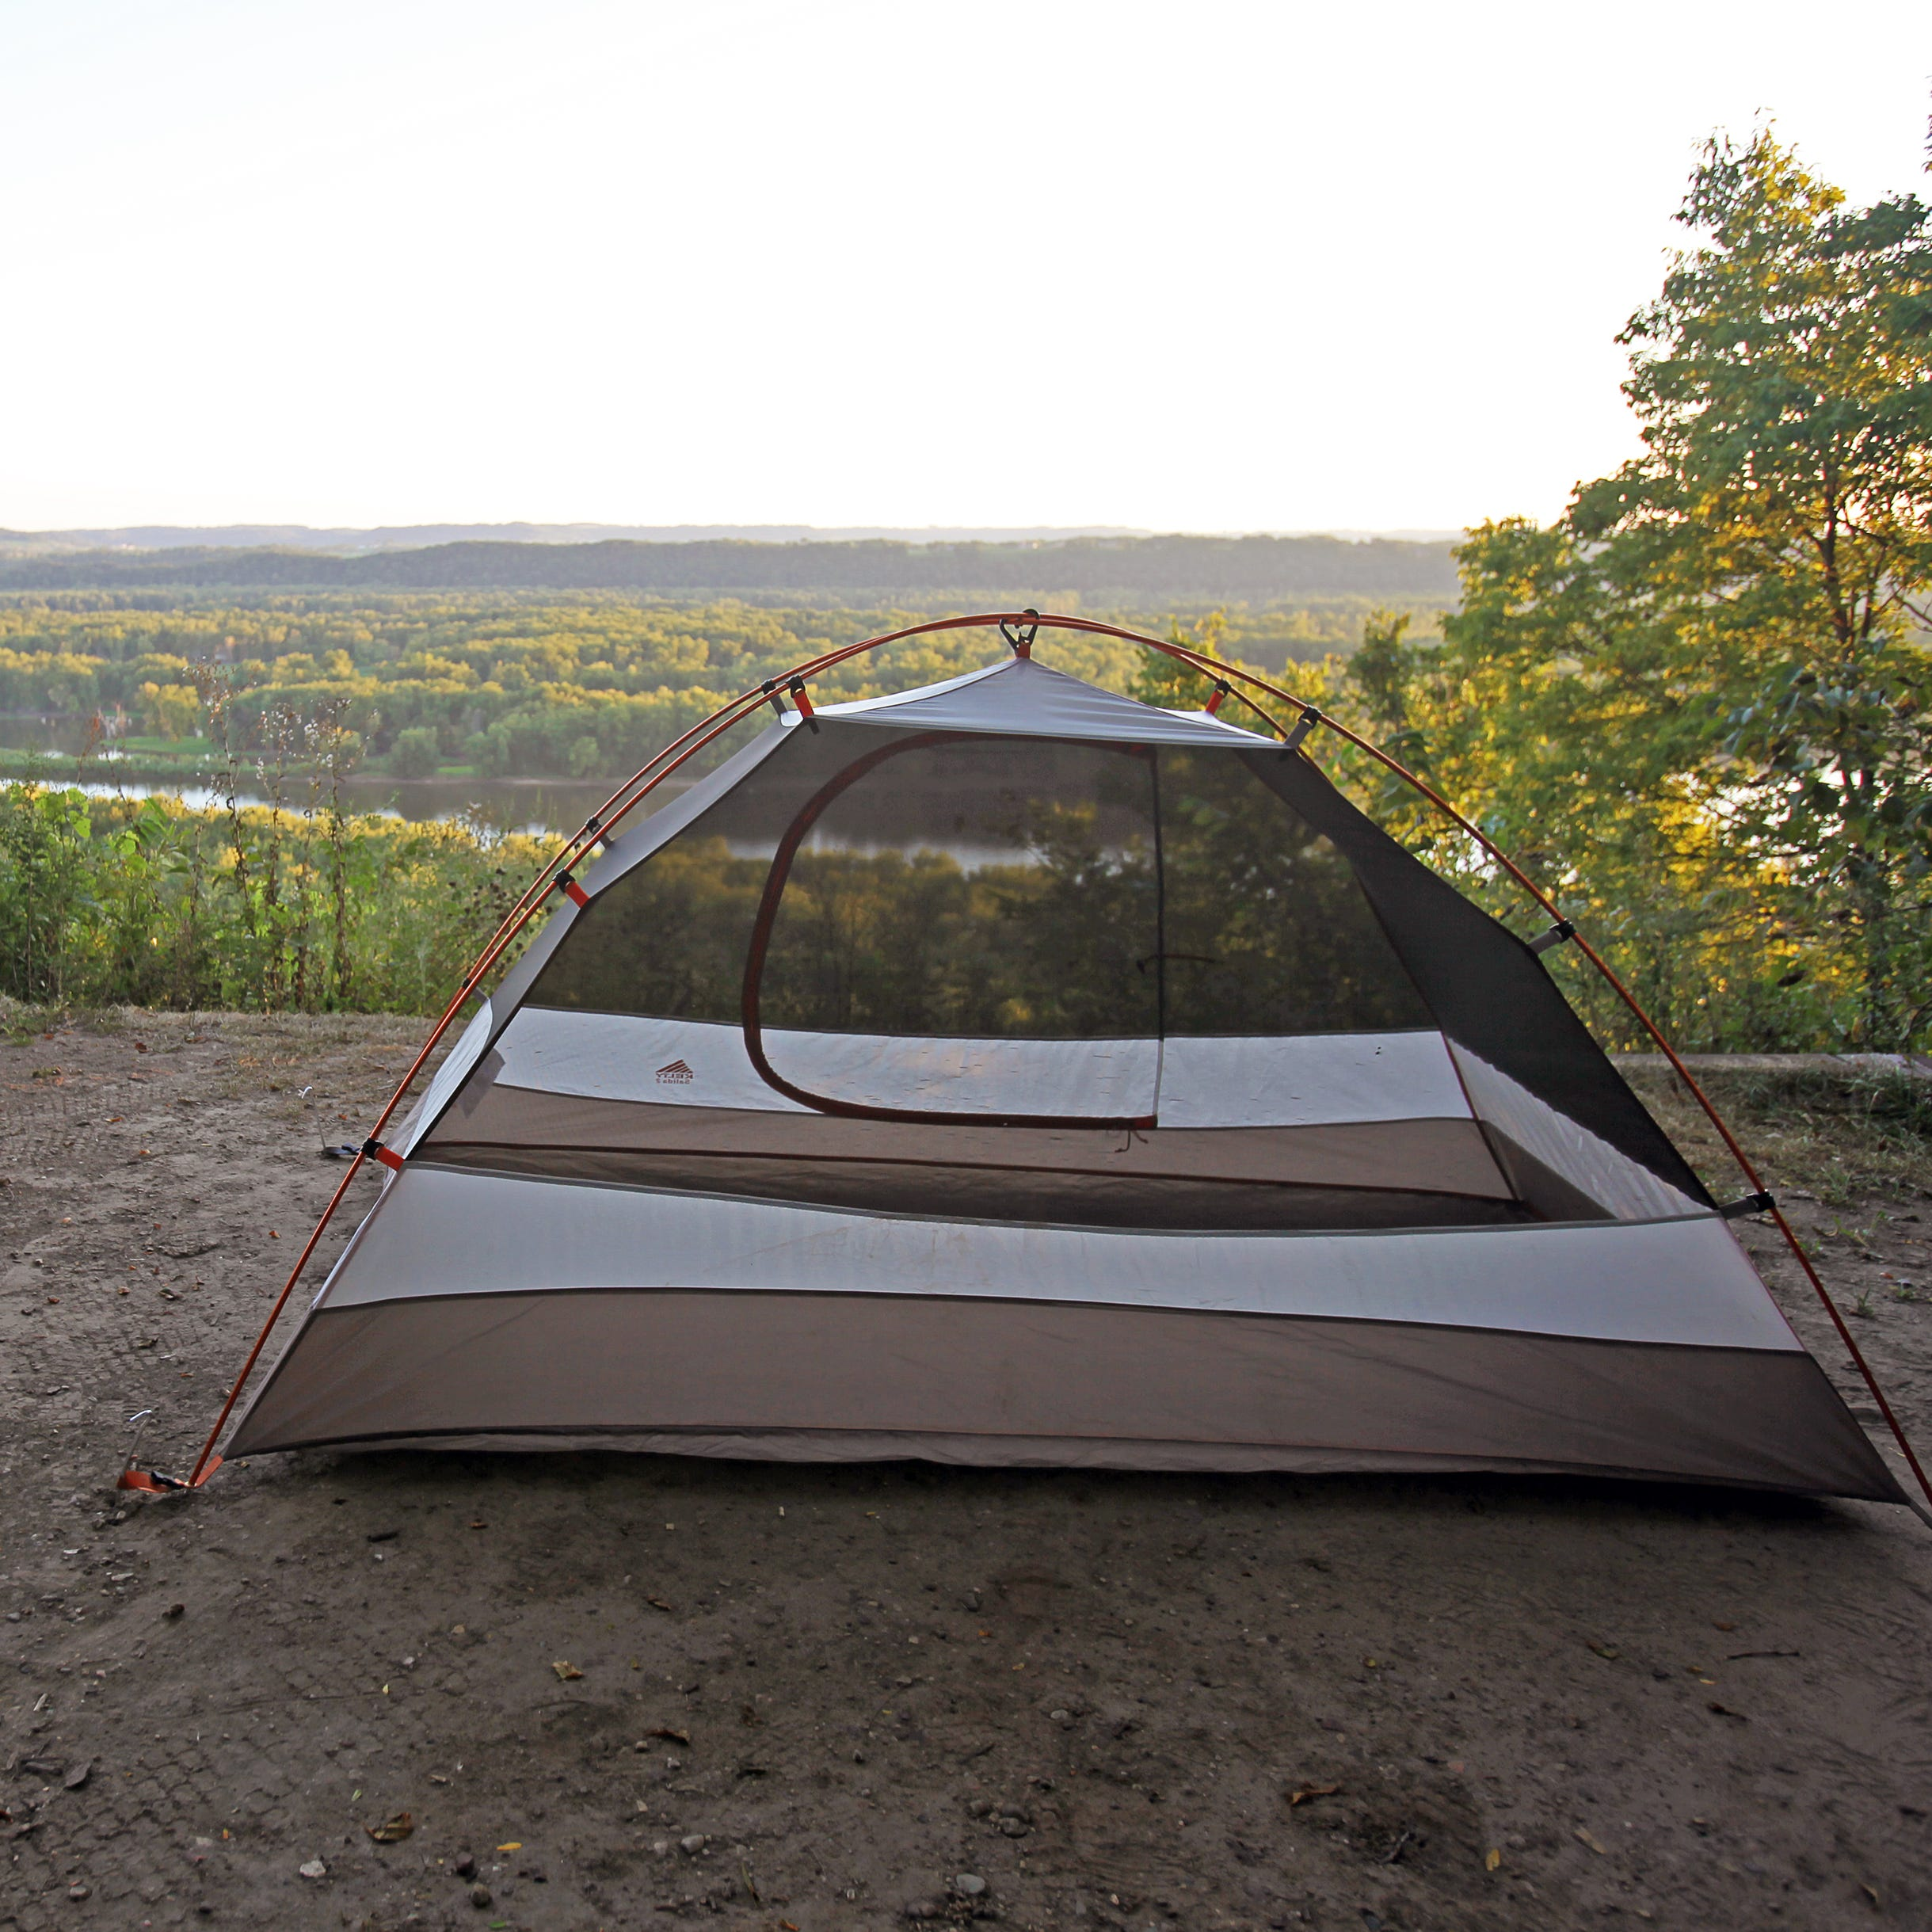 Wisconsin campers can make same-day reservations online beginning May 1